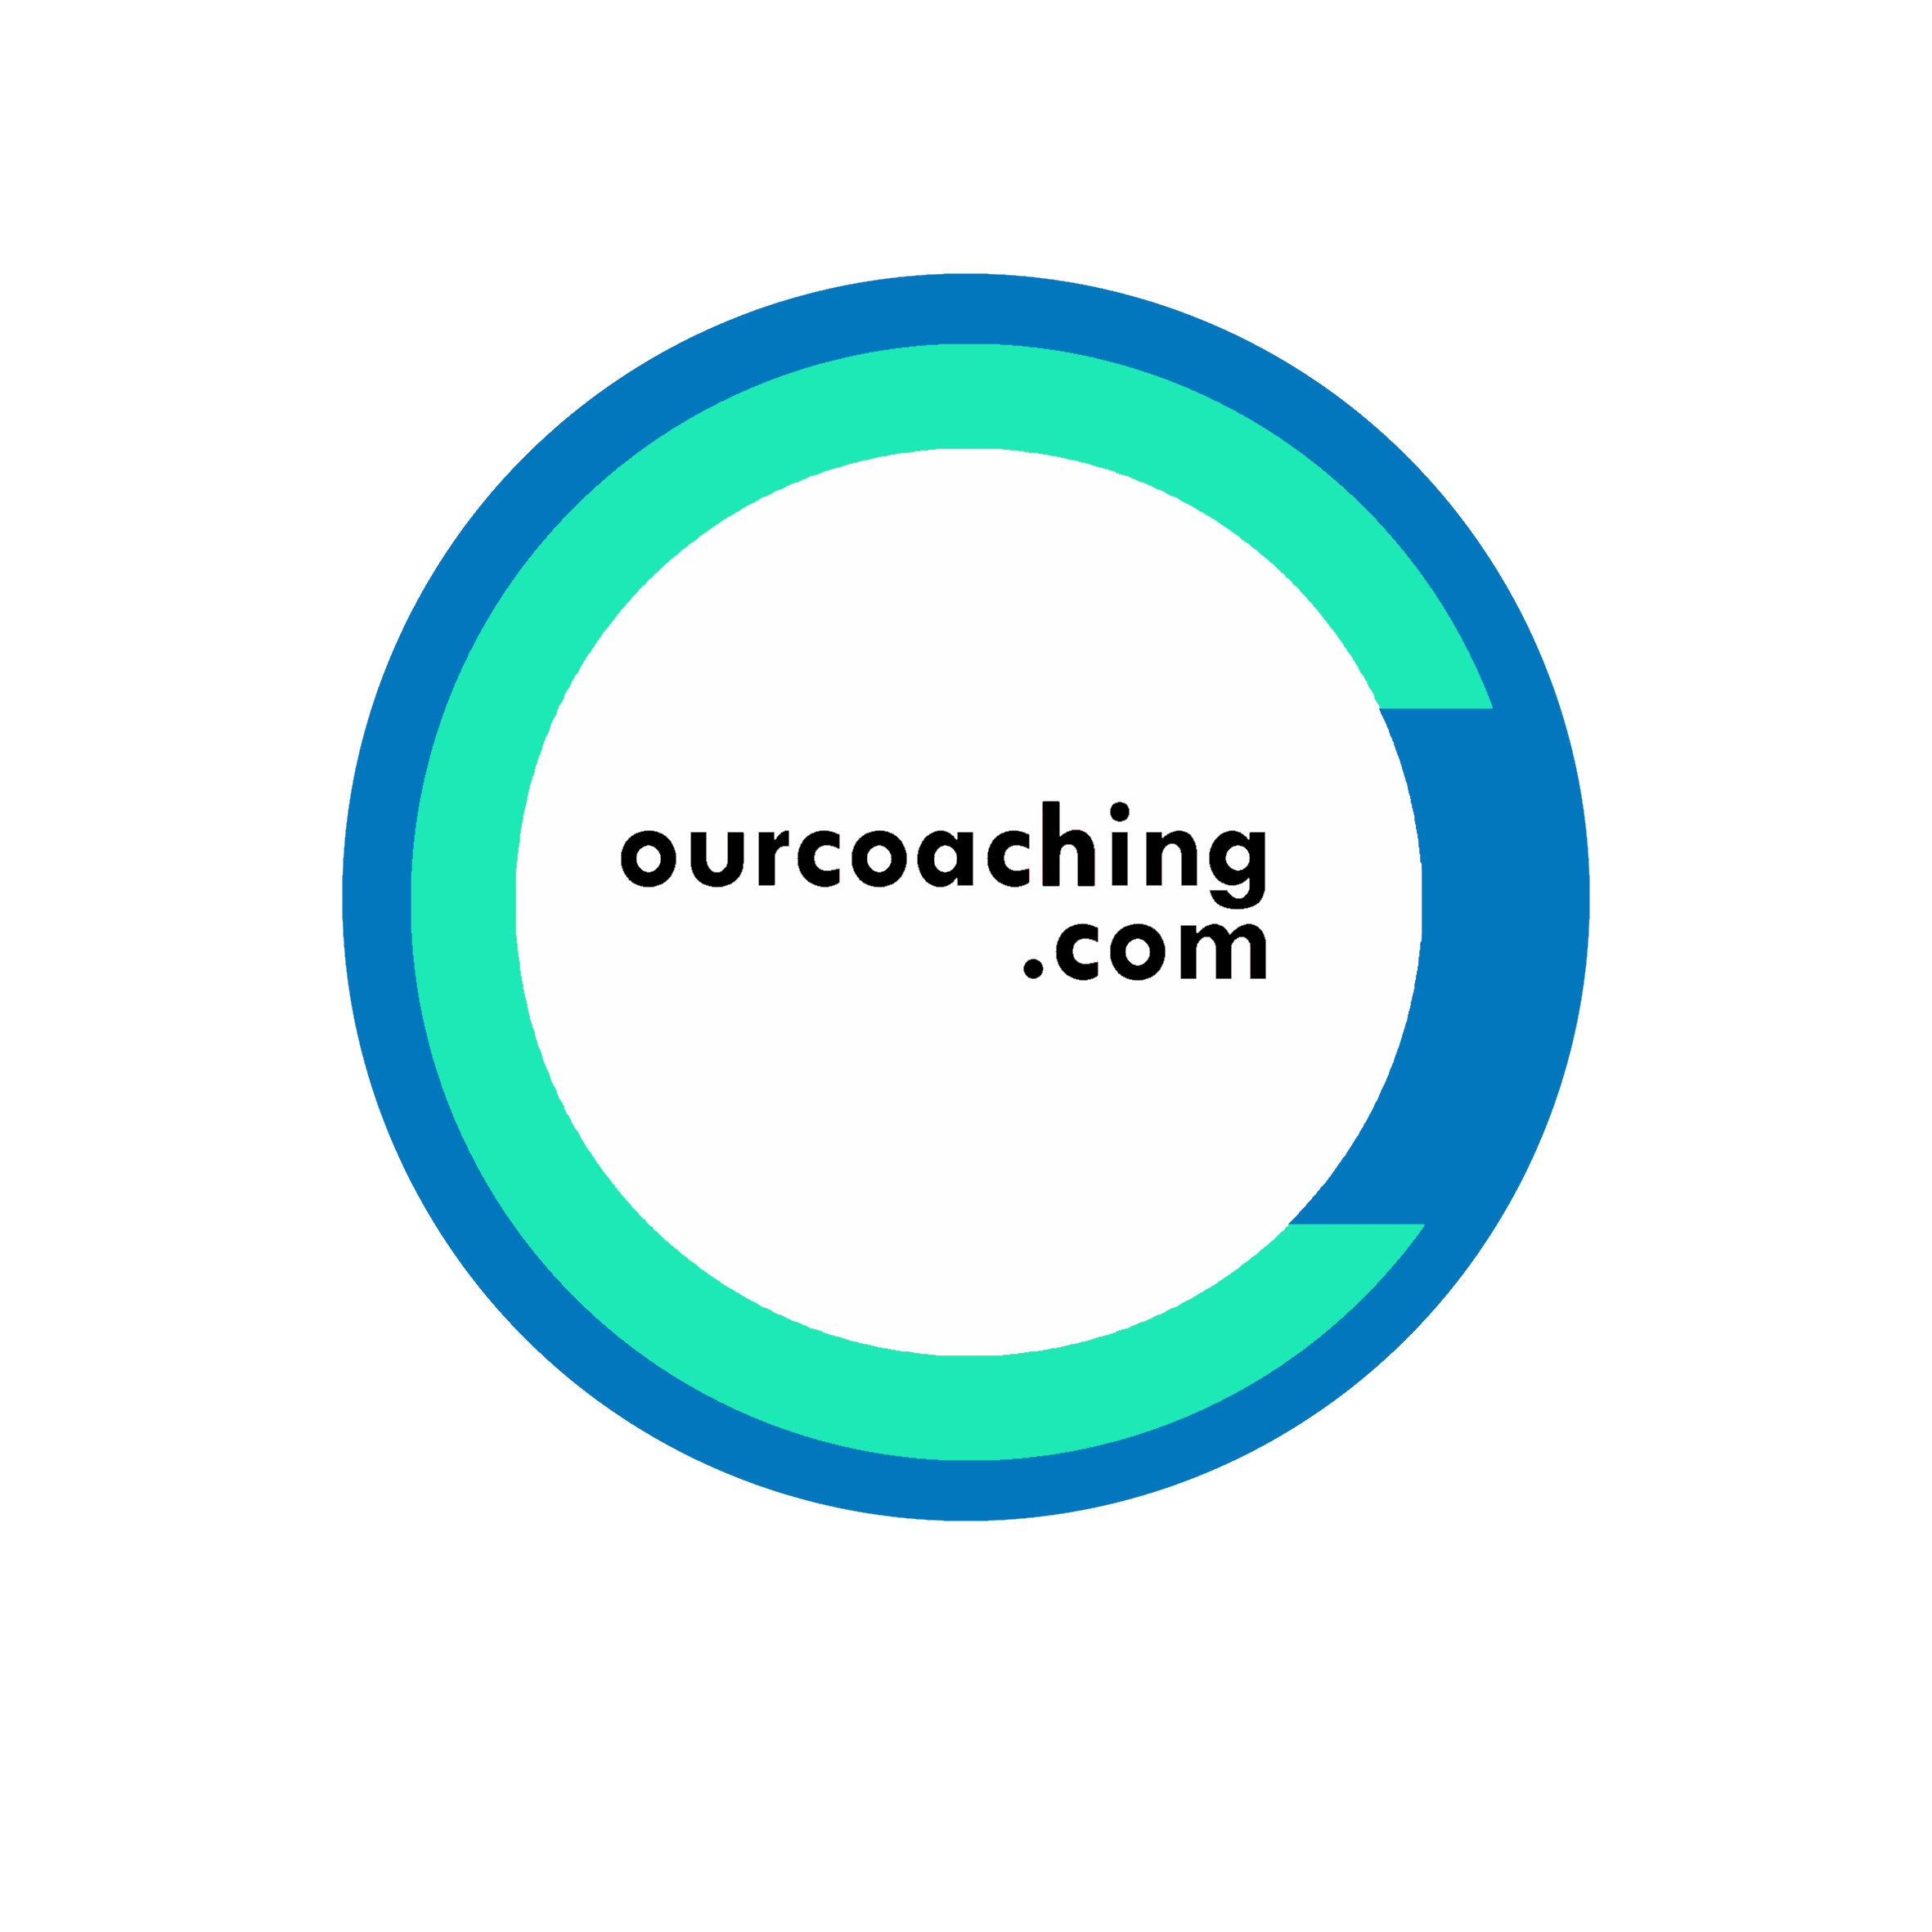 Ourcoaching.com – An E-Learning website